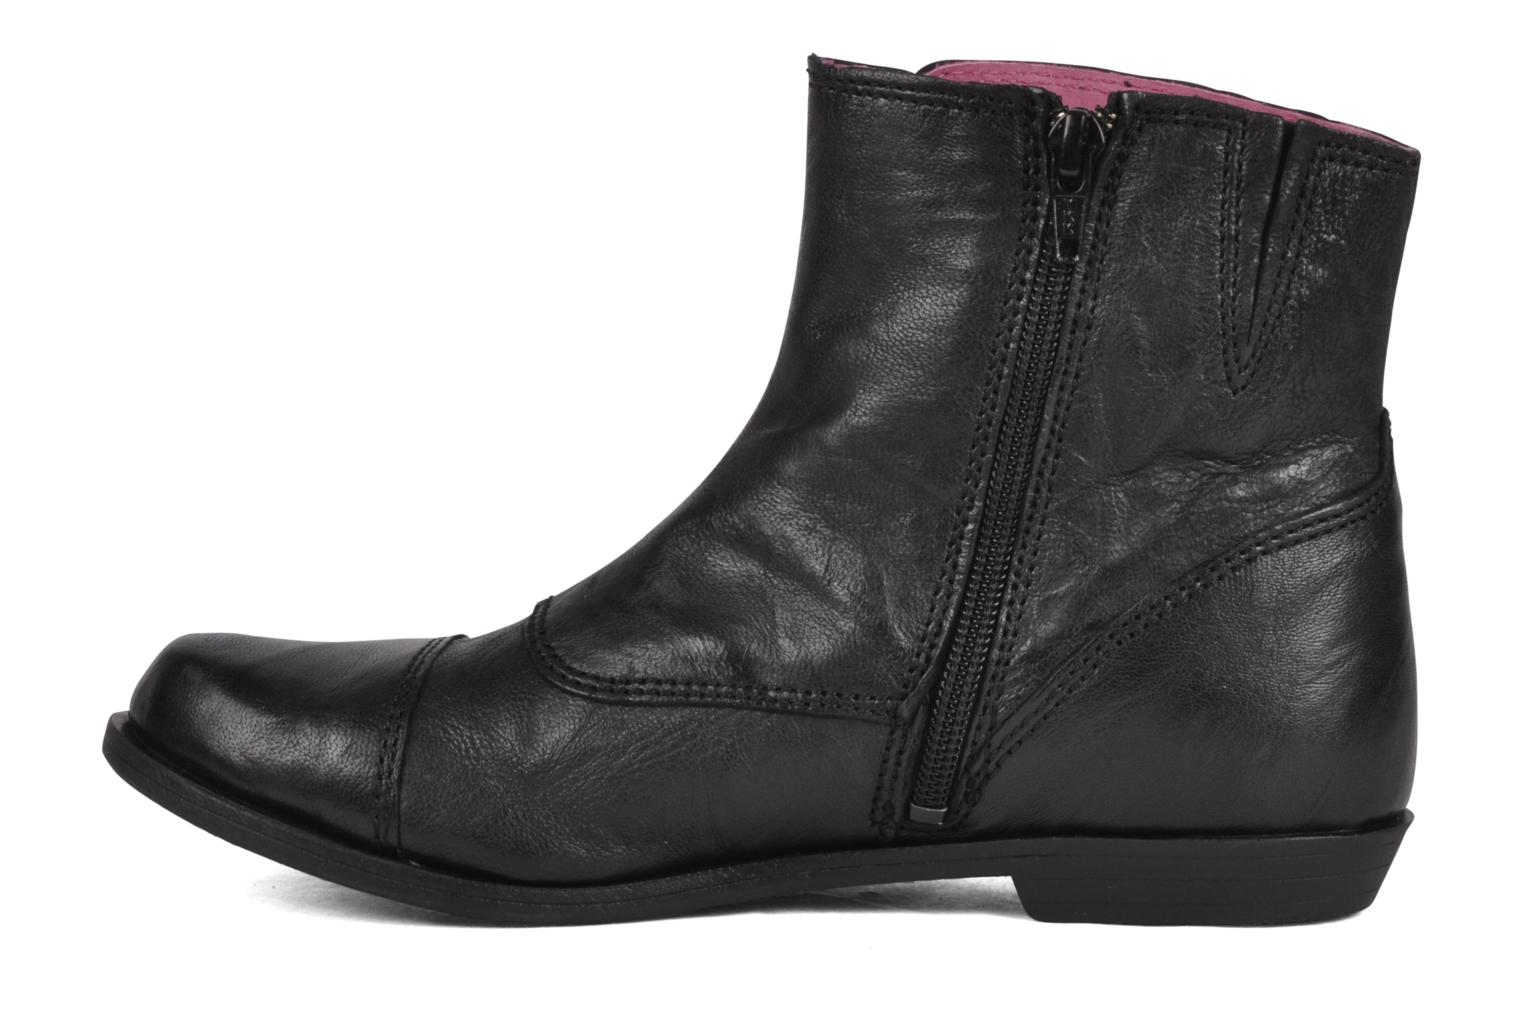 Bottines et boots Kickers Edkick Noir vue face